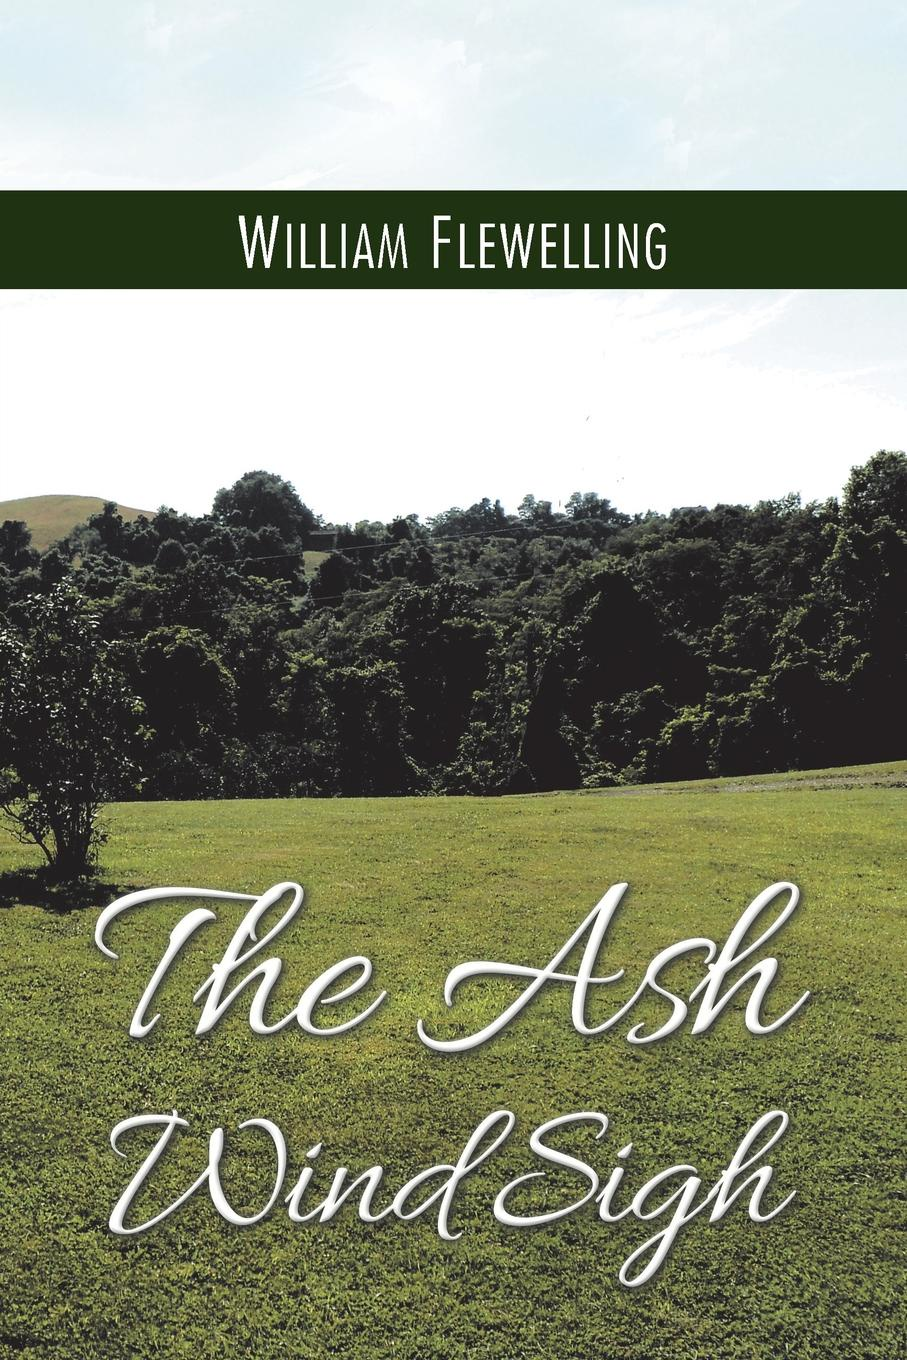 William Flewelling The Ash Wind Sigh autumn lee collected poems